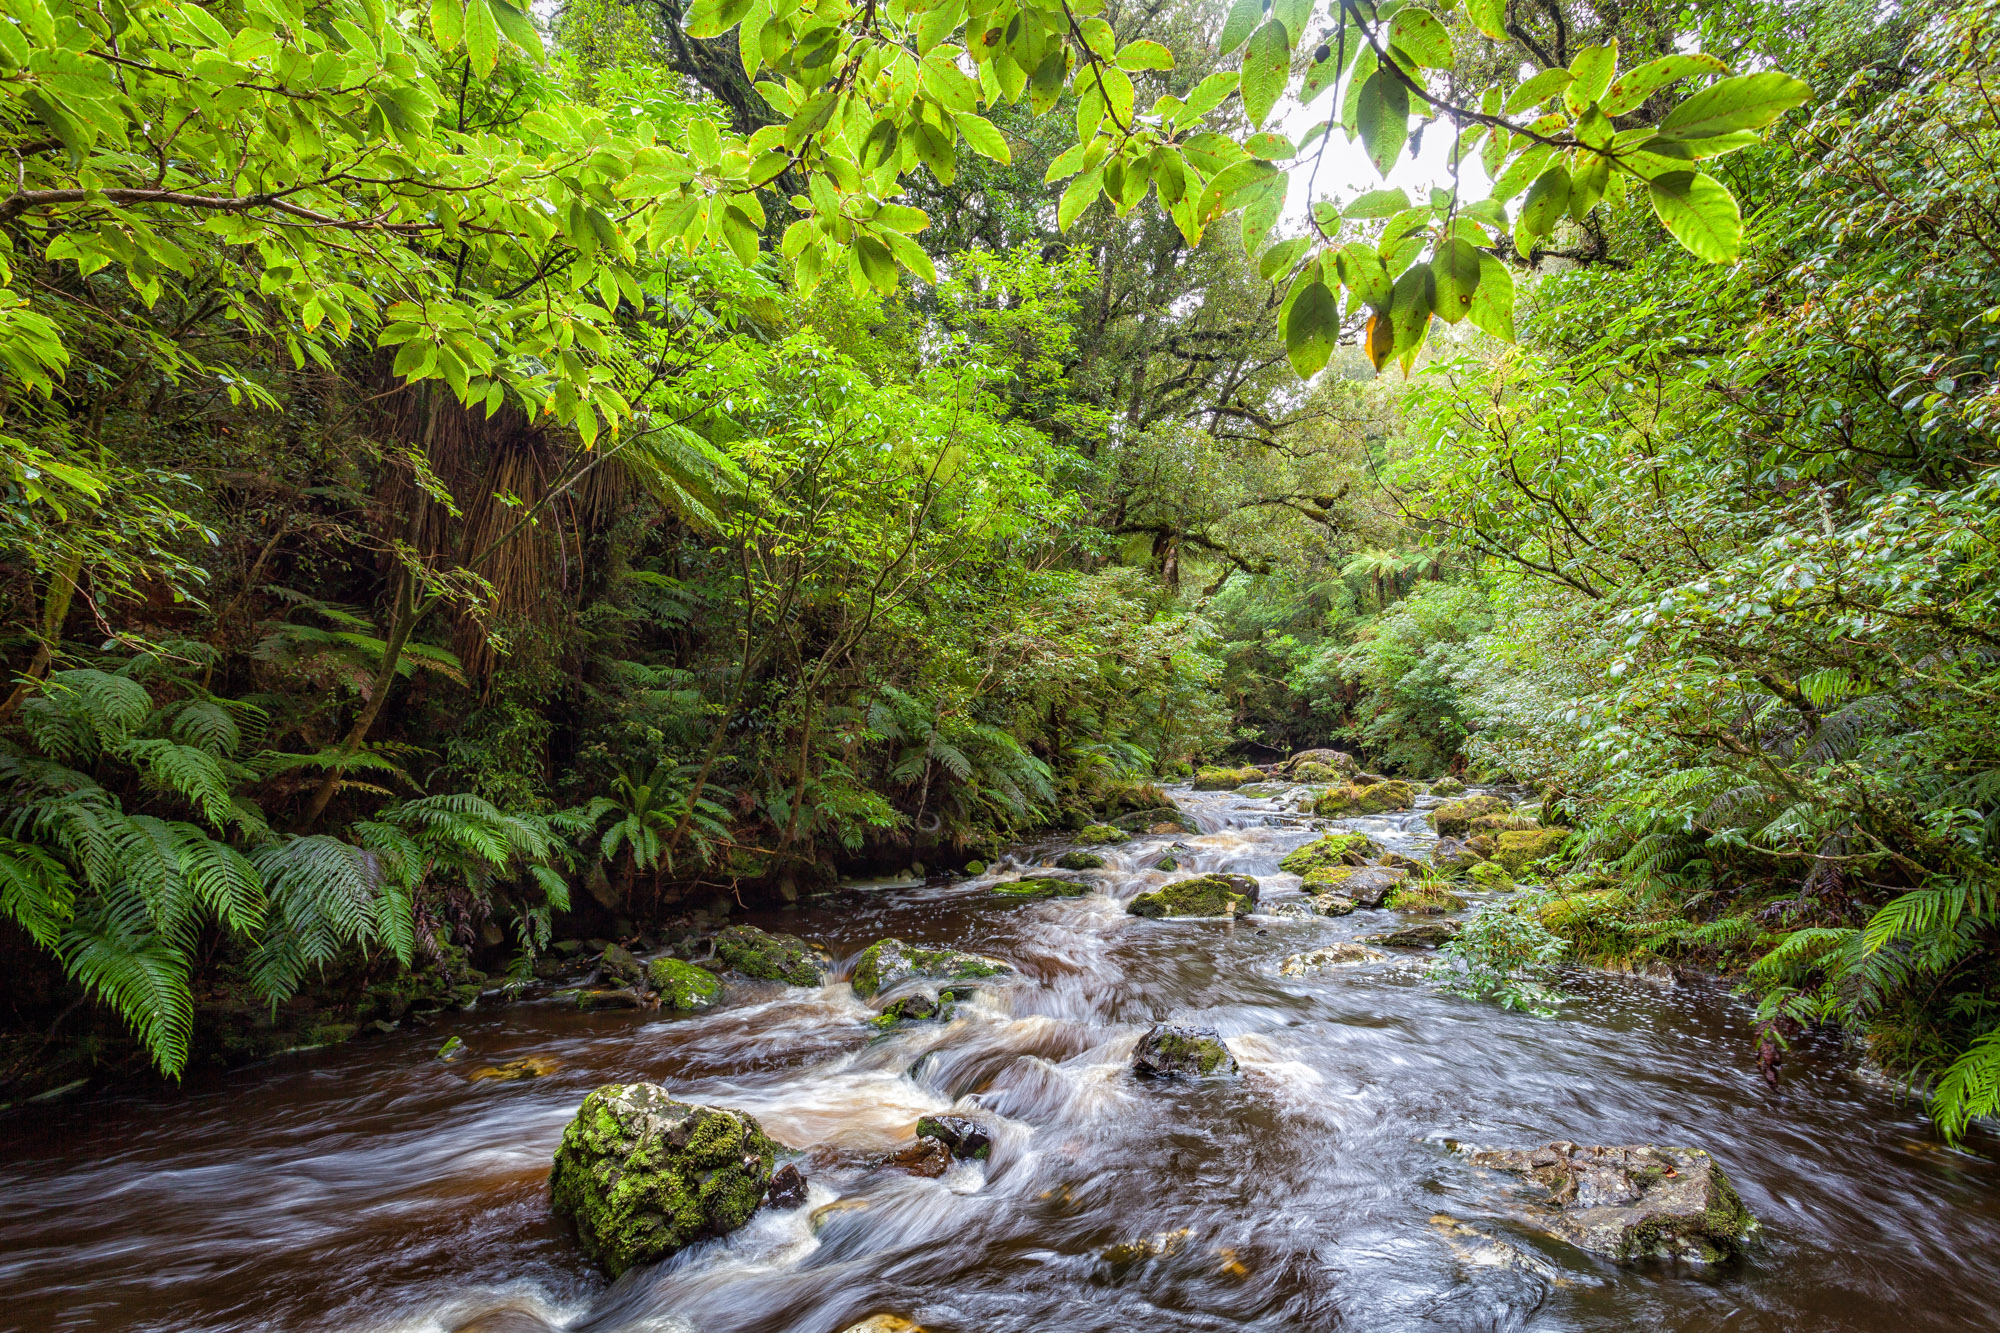 Man Cave Waipapa : Southern scenic route catlins